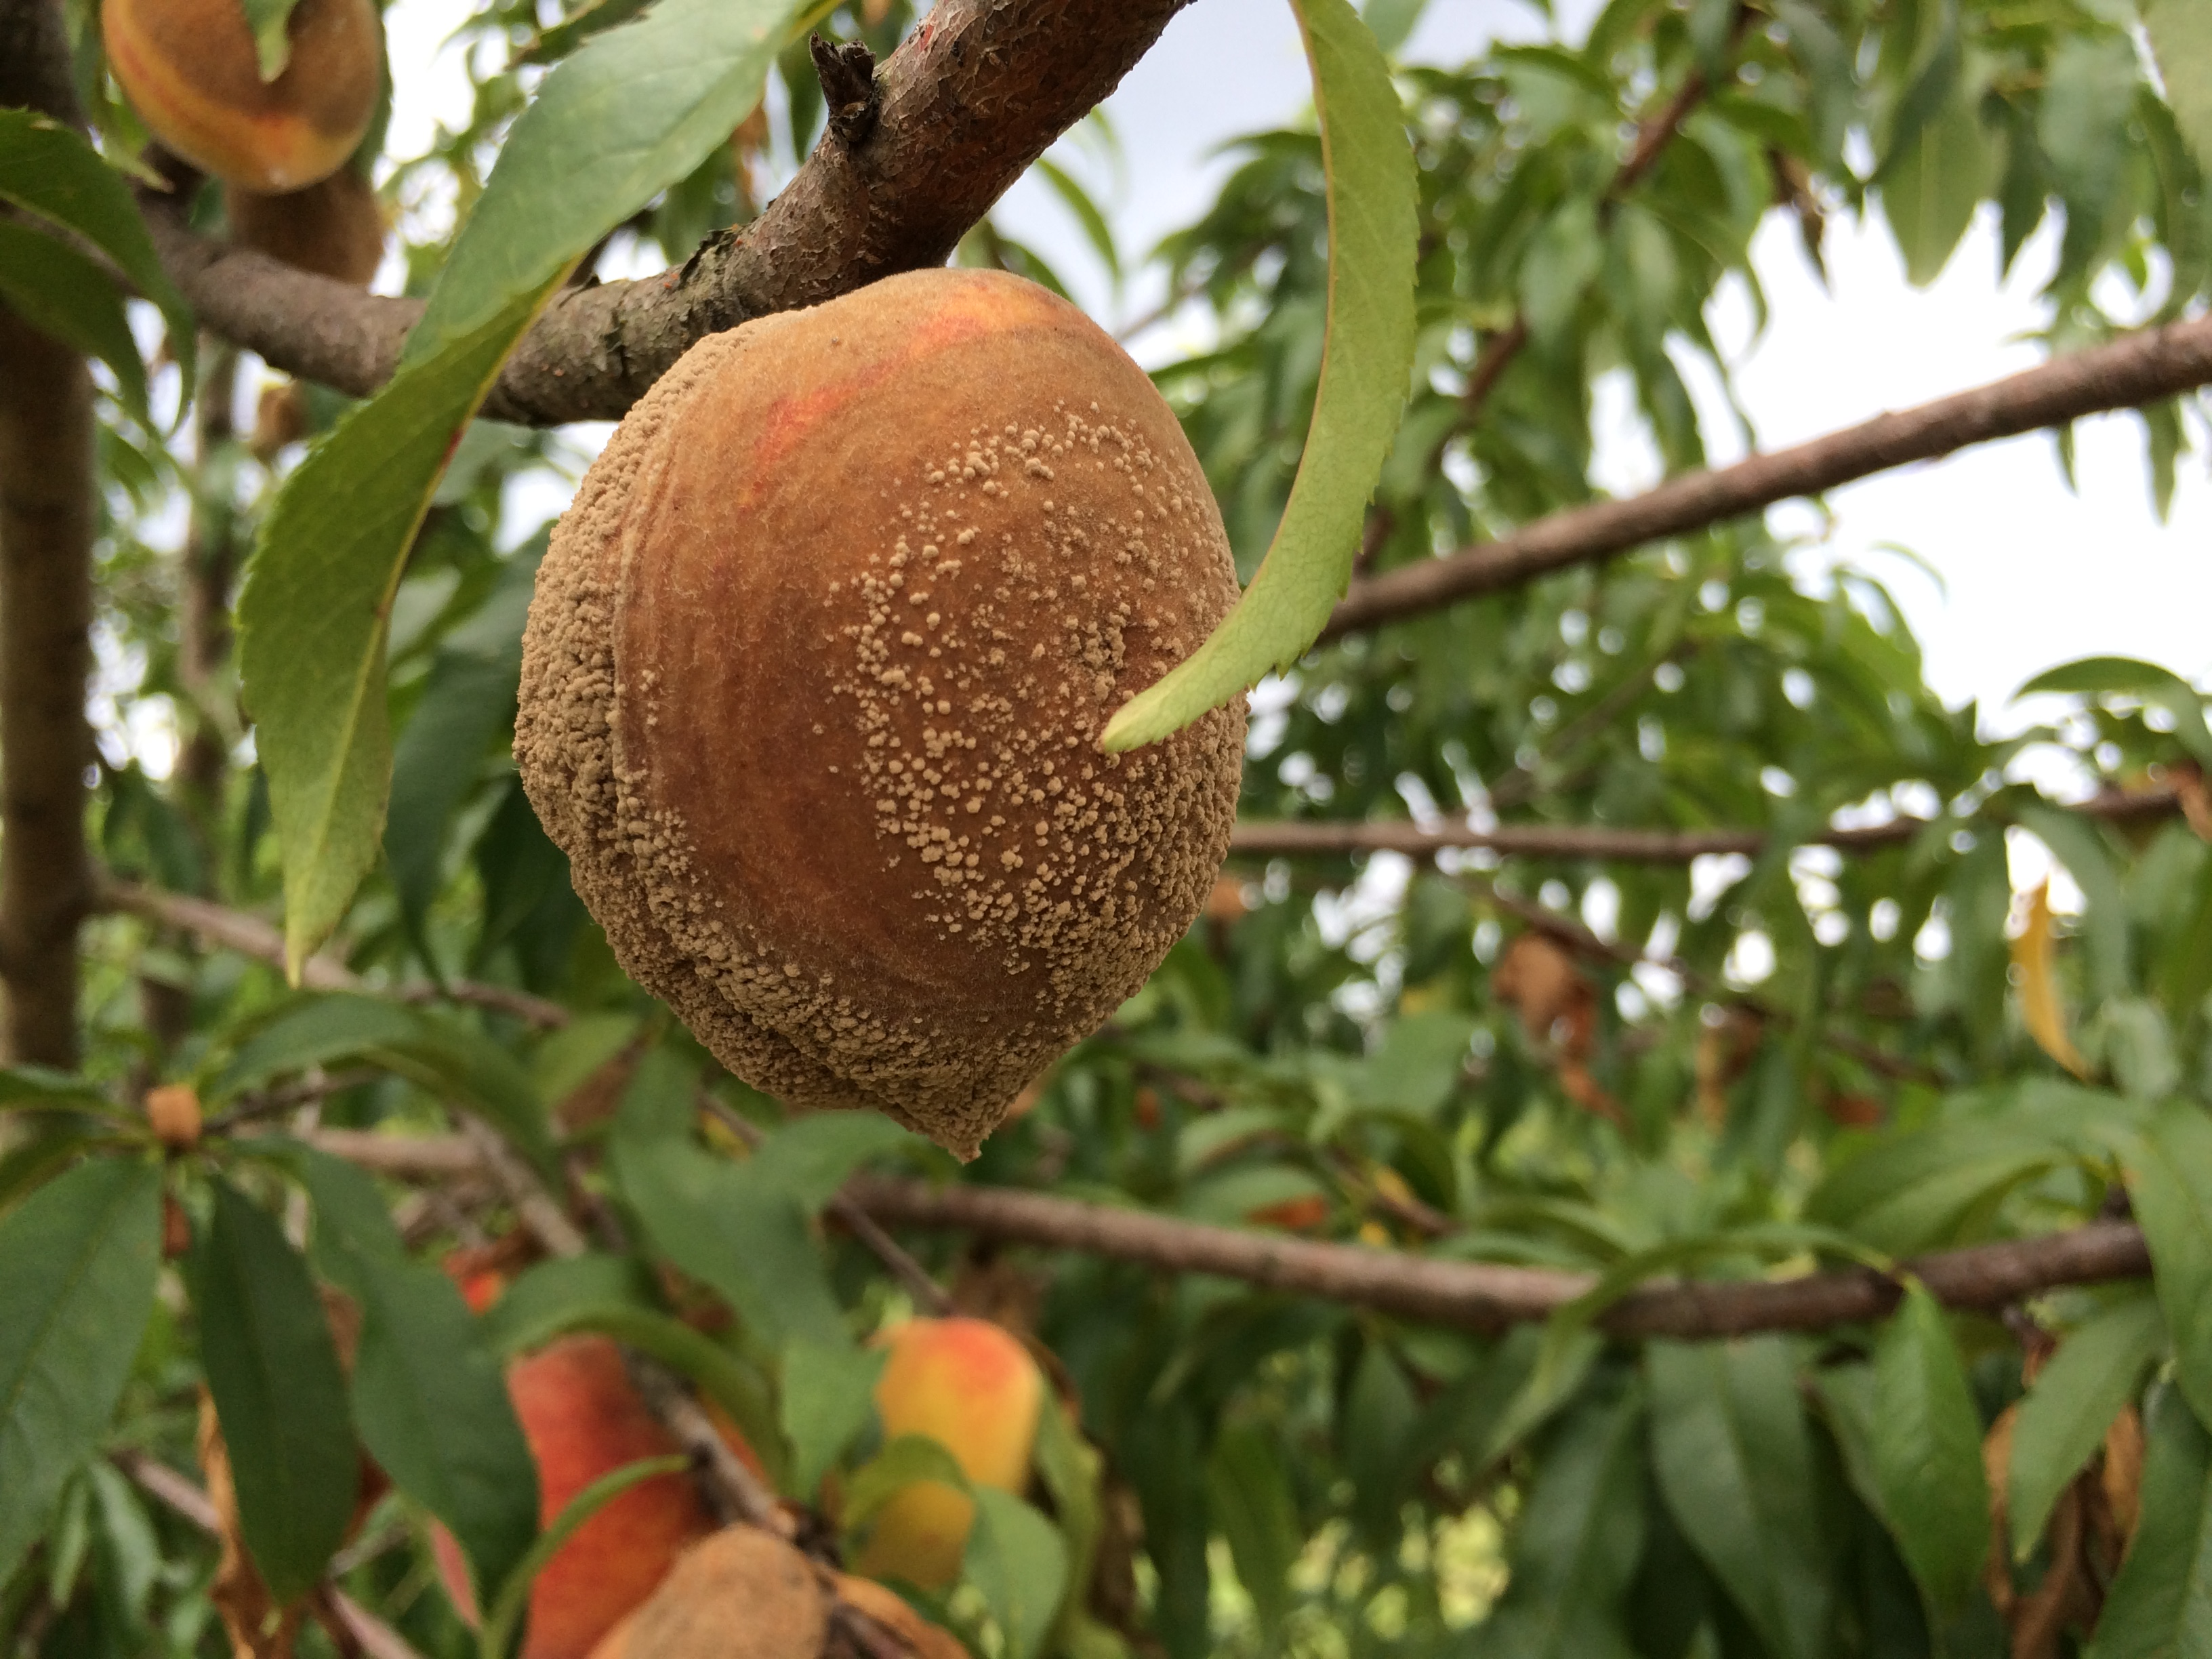 Symptoms and signs of brown rot on peach.